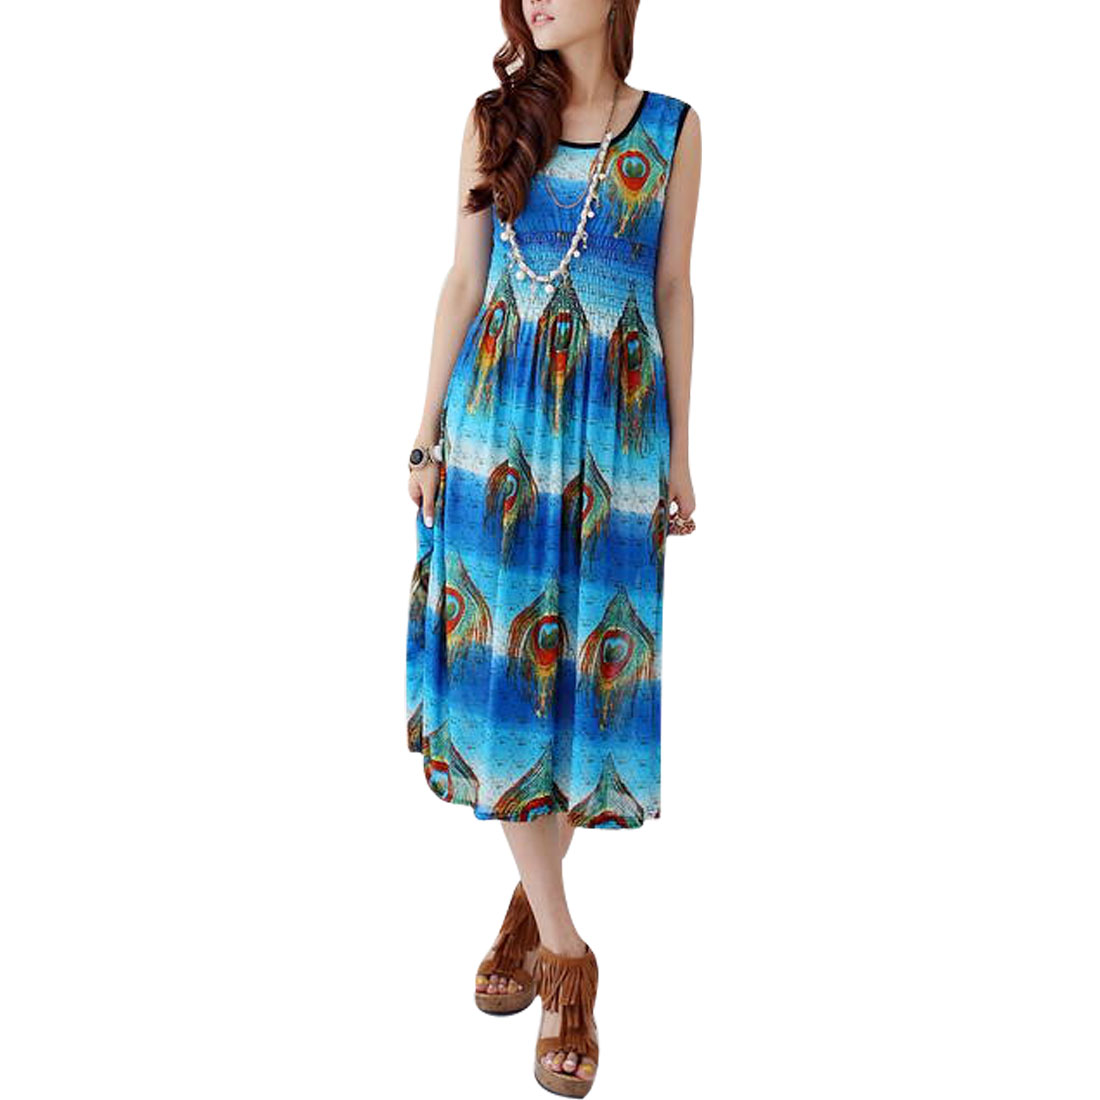 Lady Scoop Neck Peacock Feather Prints Semi-sheer Blue Tank Dress XS